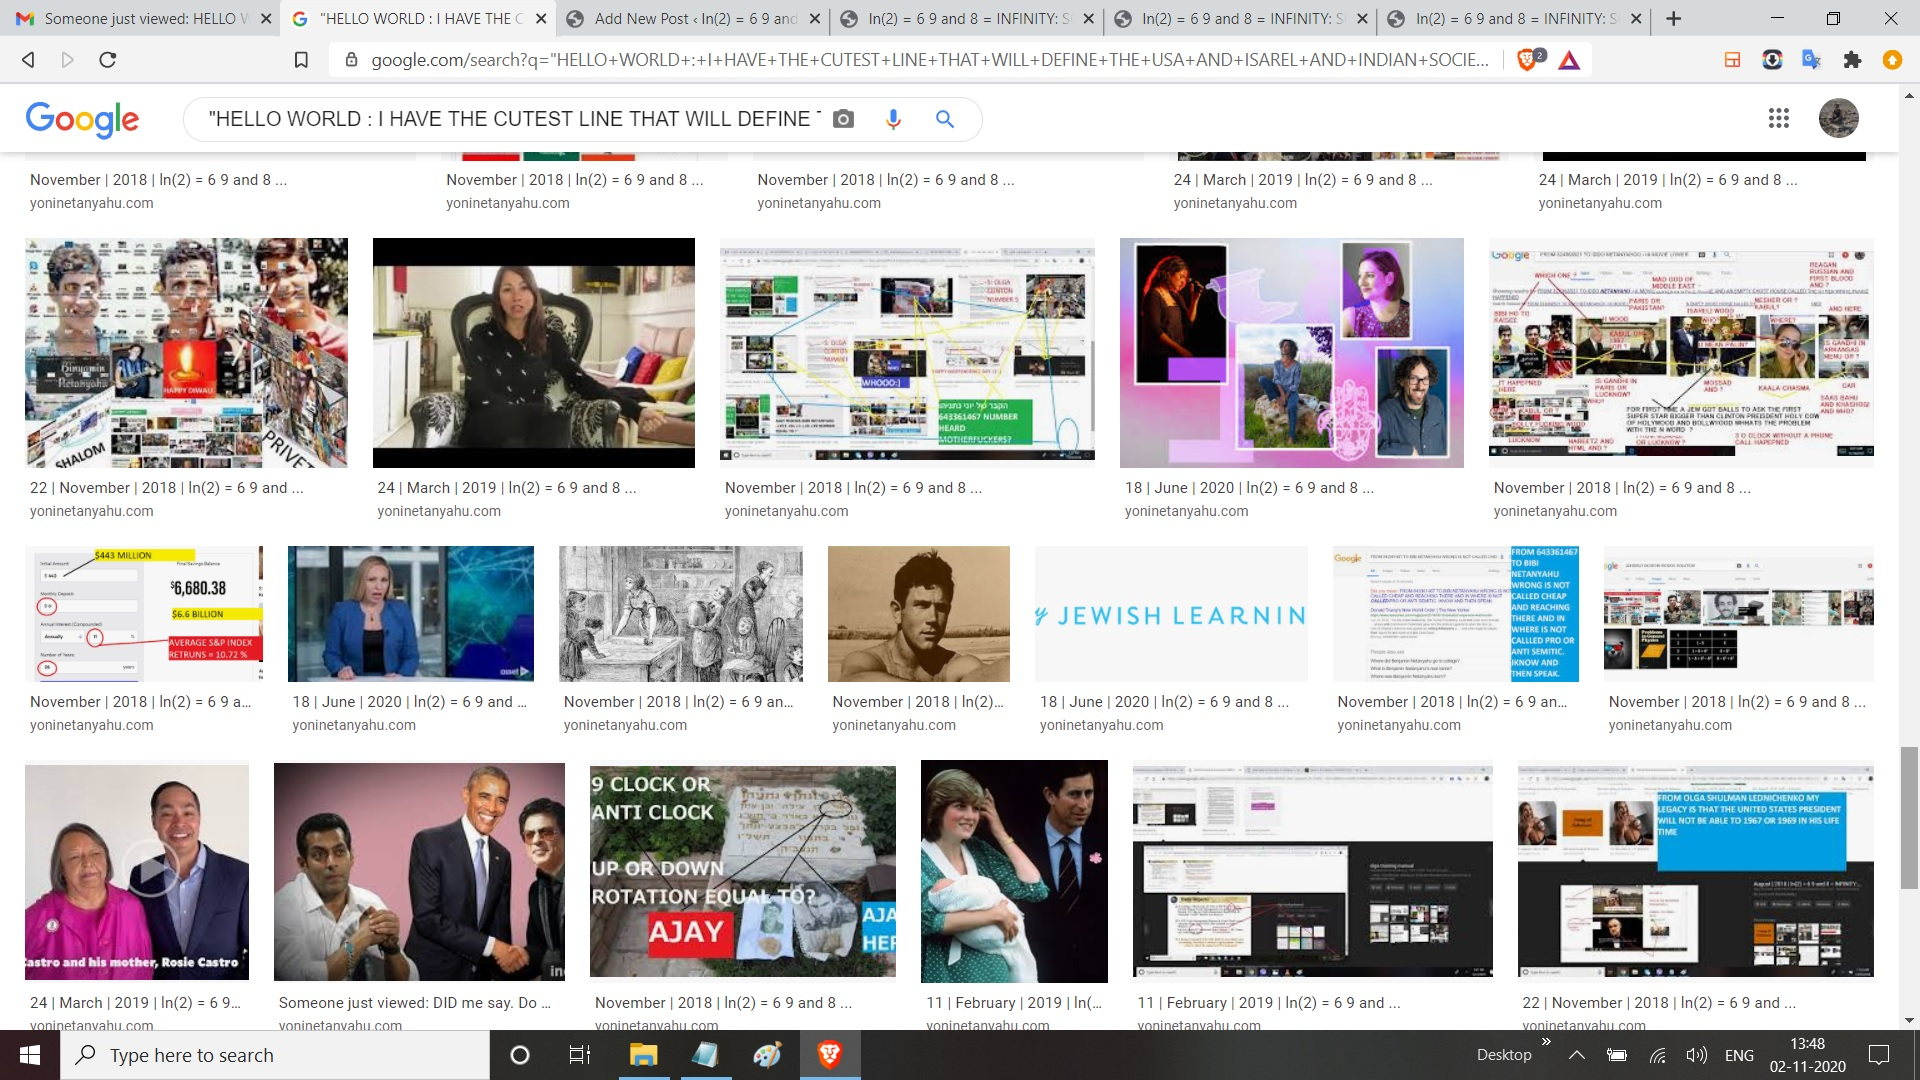 """""""HELLO WORLD : I HAVE THE CUTEST LINE THAT WILL DEFINE THE USA AND ISAREL AND INDIAN SOCIETY AND POLITCIICS AND OBAM A VERSUS JOE BIDEN AND CLINTON VERSUS SANDERS AND GOP VERSUS HOLLWYOOD ELITE AND KRUGMAN VERSUS FRIEDMAN - AND WHATS THAT NAMED THAT RUSHSIAN JEW - NAMED - U KNOW THE WHO WHO WROTE THE FOUNFTAIN HEAD YEAH WHATS HER NAME BUBBA - AYAN OR ANN RAND? VERSUS - OBAMA COMMUNITY PORGANIZR ND MICCHLE OBAMA VERSUS SARAH PALIN EVEN - BUT U NEED HALF TRUTHS 0, SO HERE IS MY GIFT - ITS CALELD """"OLAGA AJYA KAUN"""" IN THEI APPLY ALL U CAN HERE CAN EMANS OLGA IS CHALENGNG HAPRINCETON GARDUATED MICHELLE OBAMA AND EVEN CHELSEA CLINTON FROM OXFORD :) OK - SO, APPLY RACE, RELIGION, IDENTITY POLITIS OR LACK THERE OF OR INTERNATIONAL REALIONS AND FORIEGN AID - AND CARE FOR FOREOGENSR LIKE HUMANS RIGHTS USED TO BRING DOWN MODI AND RUSHSIA AND ISARELI - AND ALL MEANS ALL U COAME UP DSO FAR SINCE I SEEN 2008 AND ME DO SOME CRAYONS SINCE I MET OBAMA AND BUBBA I MET LONG TIME AGO - IN THIS U WILL GTE A GLISPS EOF A HINDU WORD CALLED MAYA - MEANS - ILLUSIONS - OK BARACK SHOULD TRY THE MOST BECAUSE HE CONSIDERED MORAL UNLIKE MANIUPATOR OTHER POLITICIANS - SO, """" OLGA AJAY KAUN?"""""""